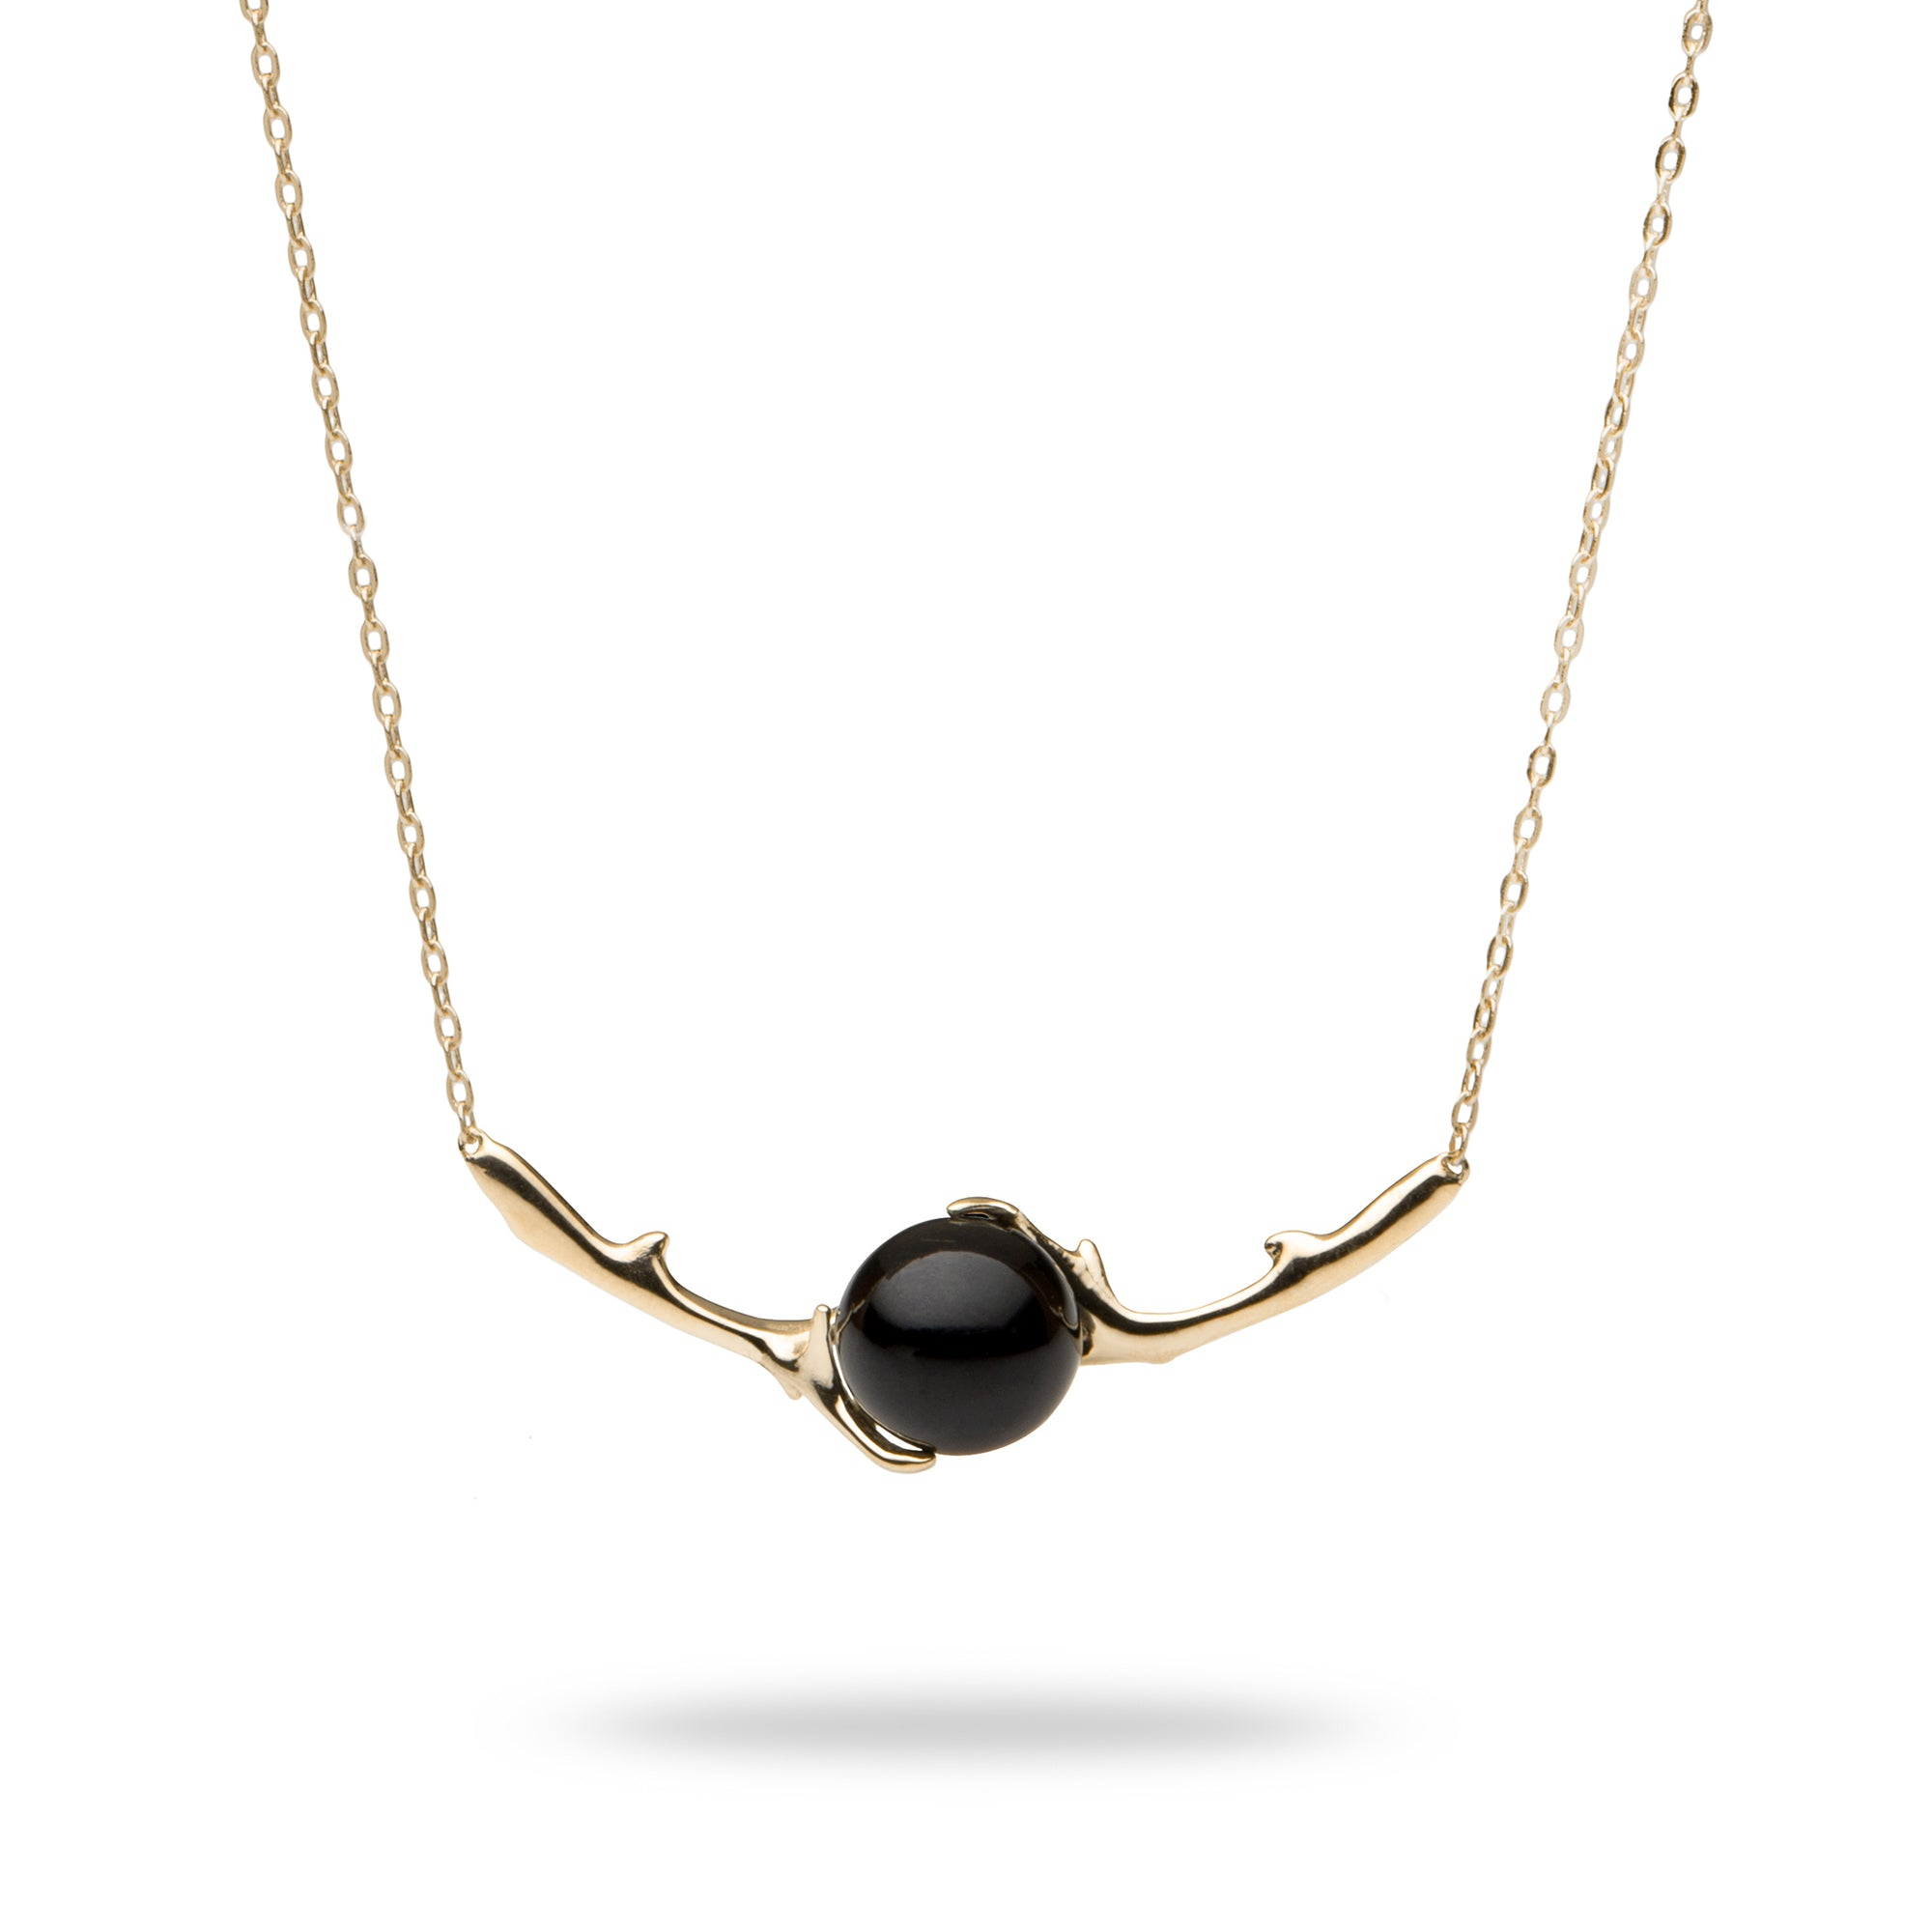 Hawaiian Heritage Black Coral Necklace in 14K Yellow Gold (9-9.9mm) - Maui Divers Jewelry